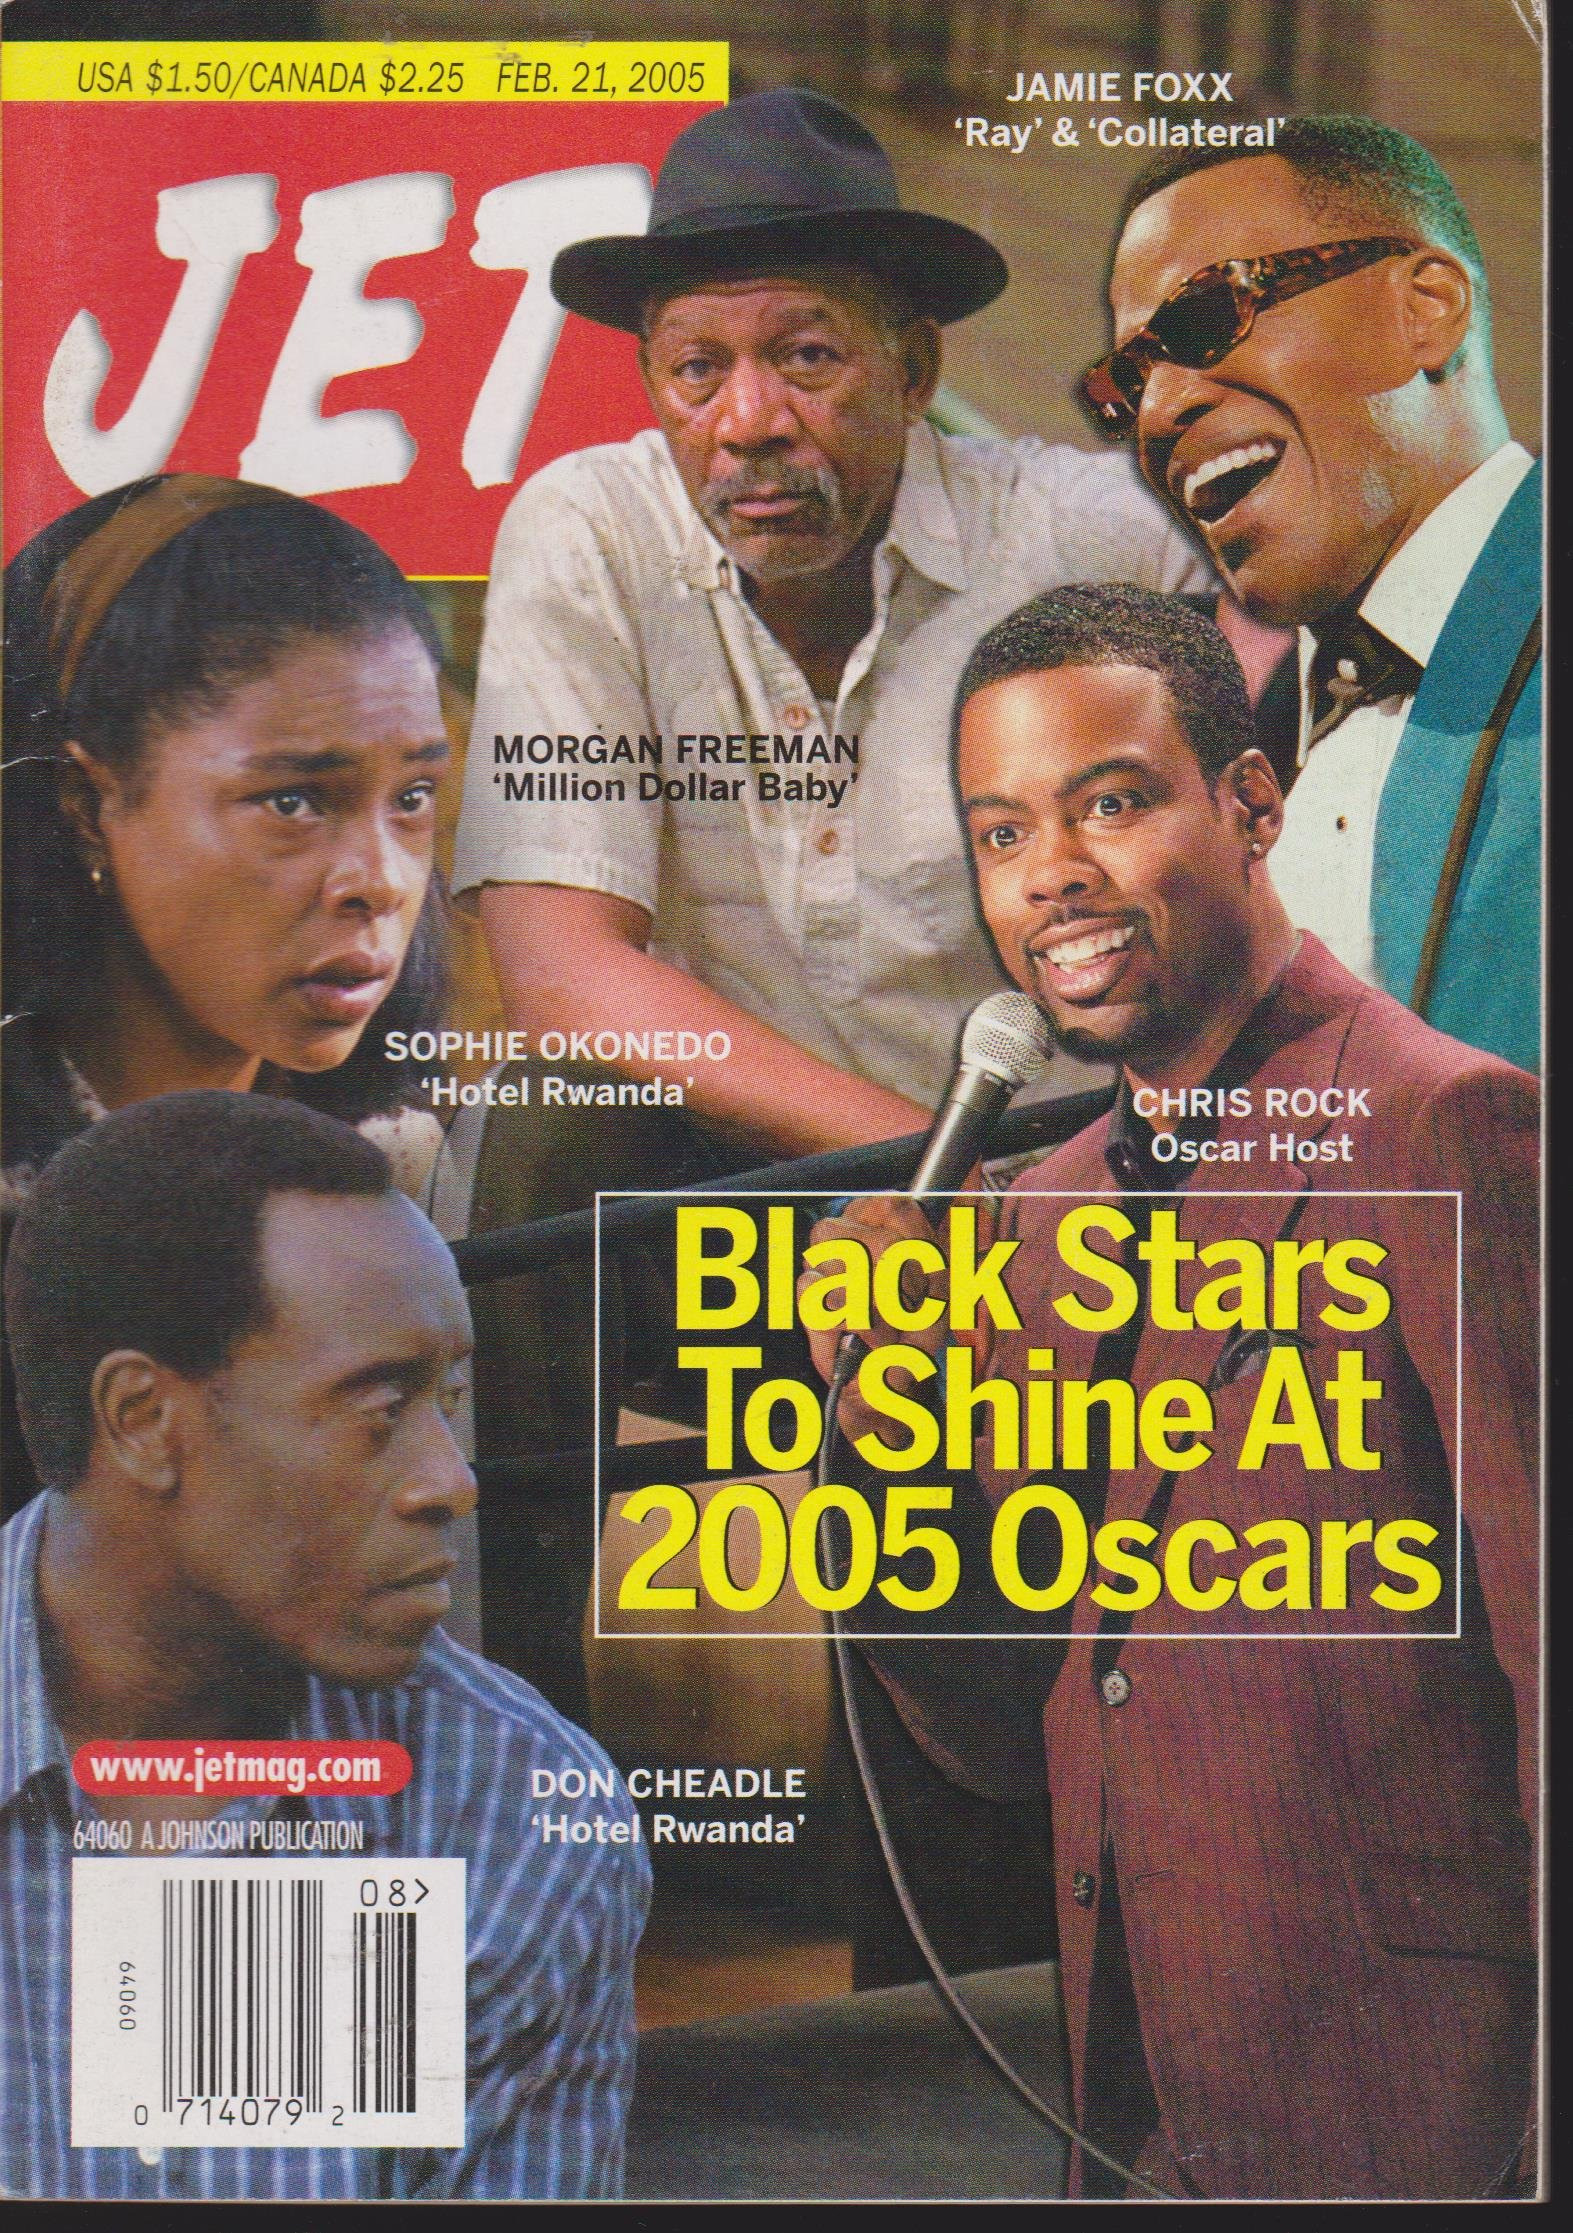 Download JET MAGAZINE FEBRUARY 21, 2005 *BLACK STARS AT THE 2005 OSCARS* PDF